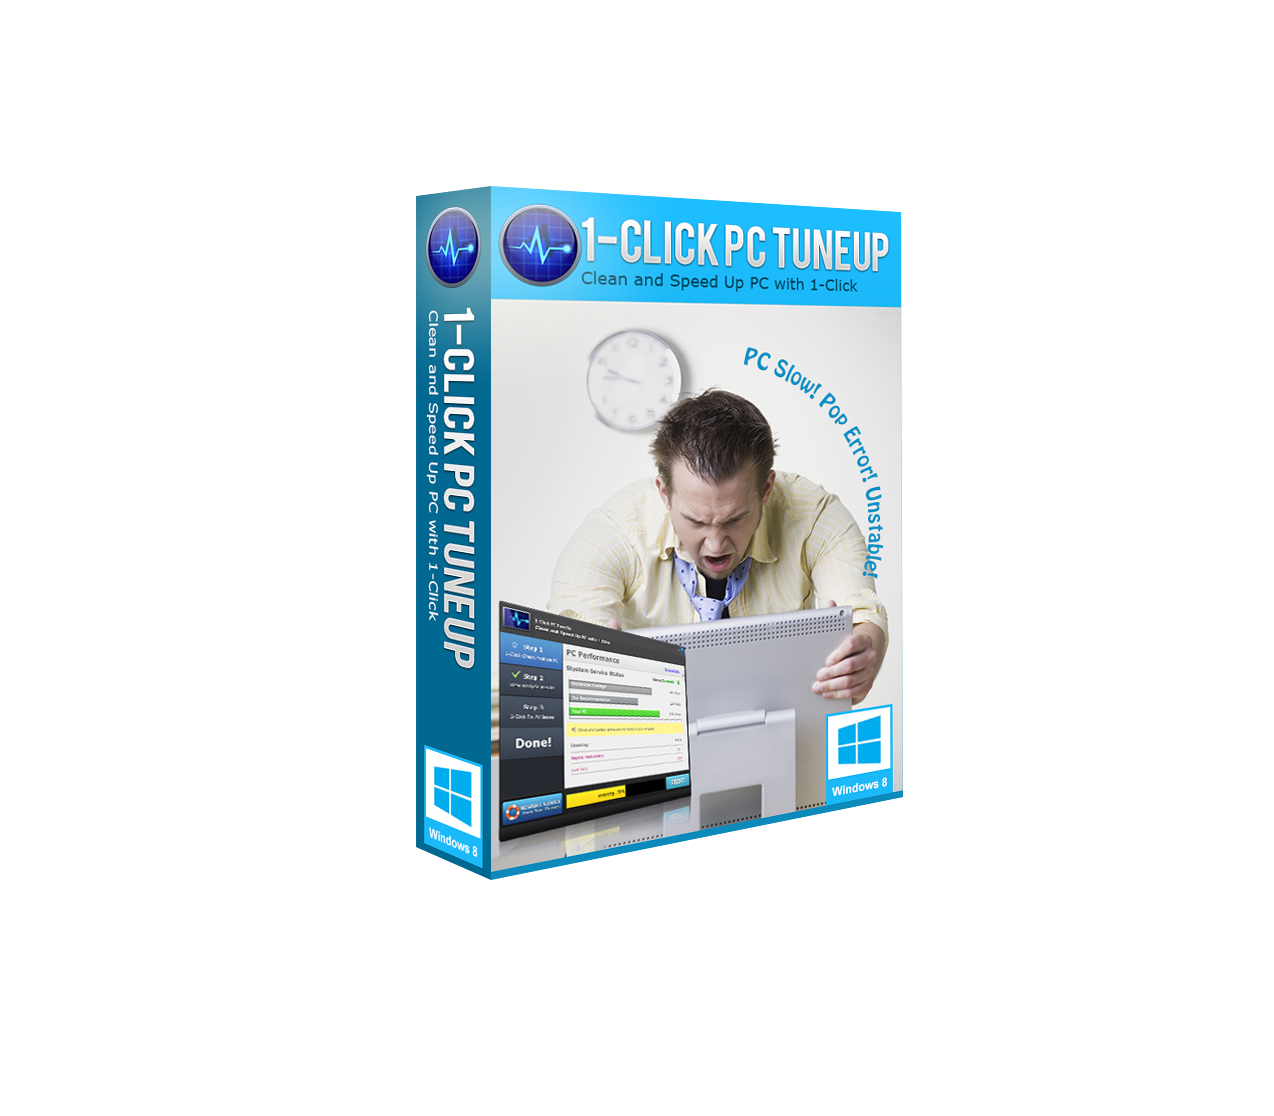 vitarsoft-co-ltd-1-click-pc-tuneup-3-pcs-logo.png